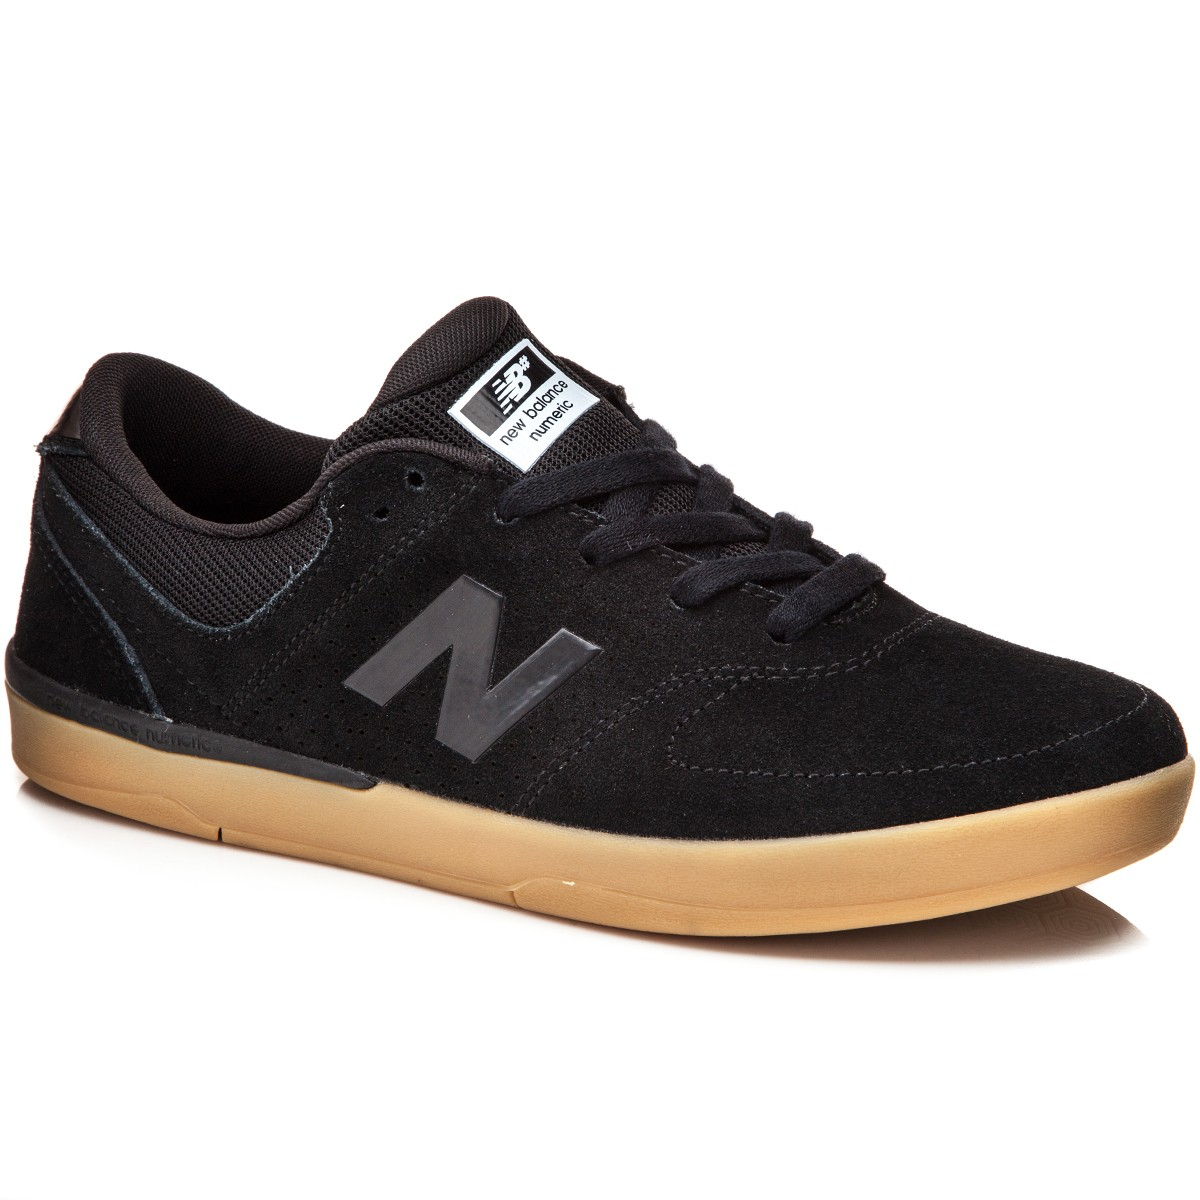 04f75ac64147 New Balance PJ Stratford 533 Shoes - Black Gum - 6.0